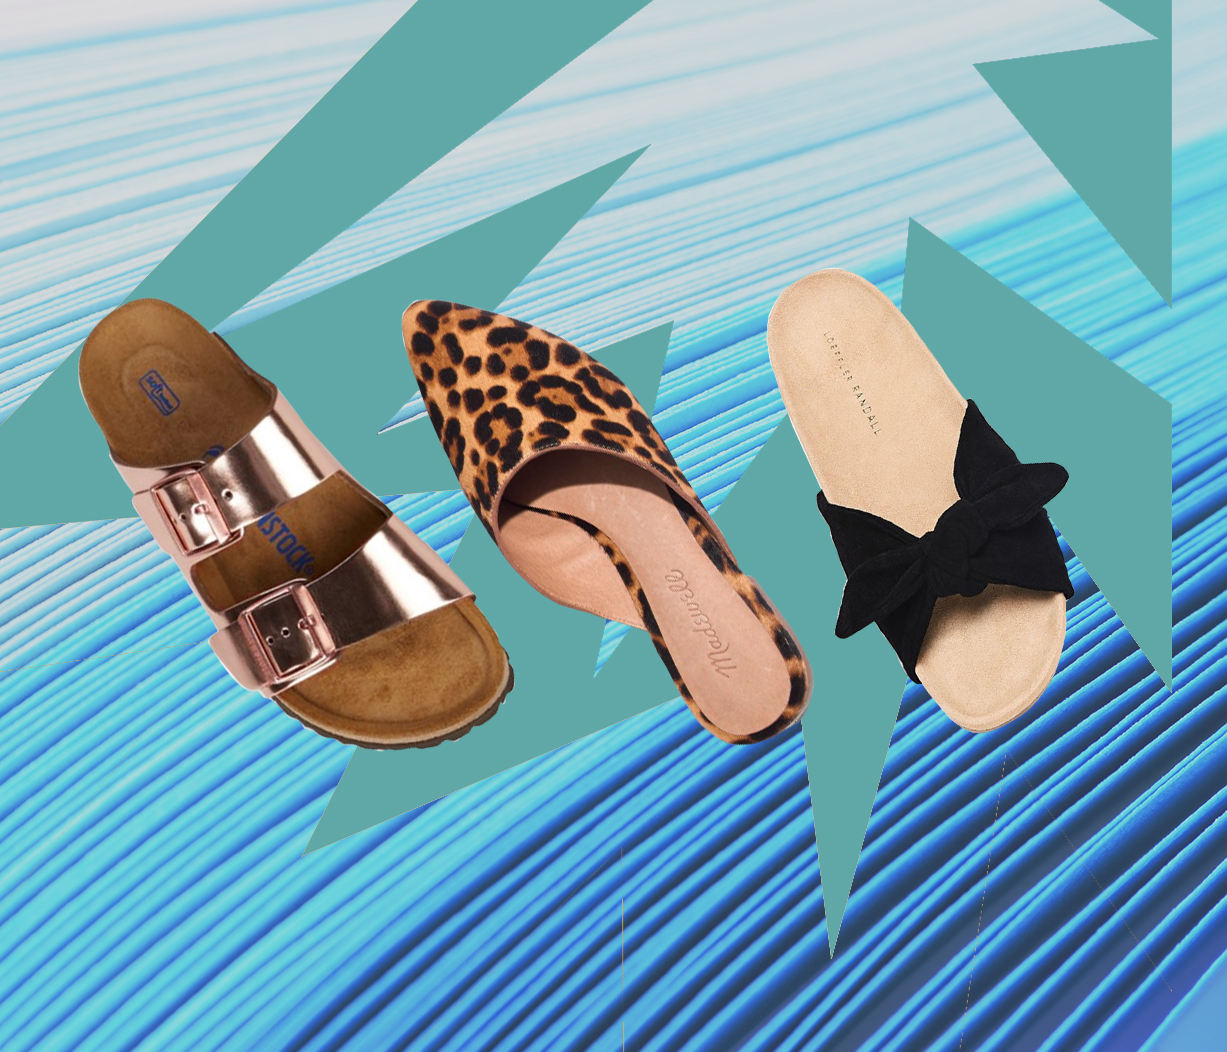 7 Incredibly Comfortable (and Cute!) Shoes for Traveling